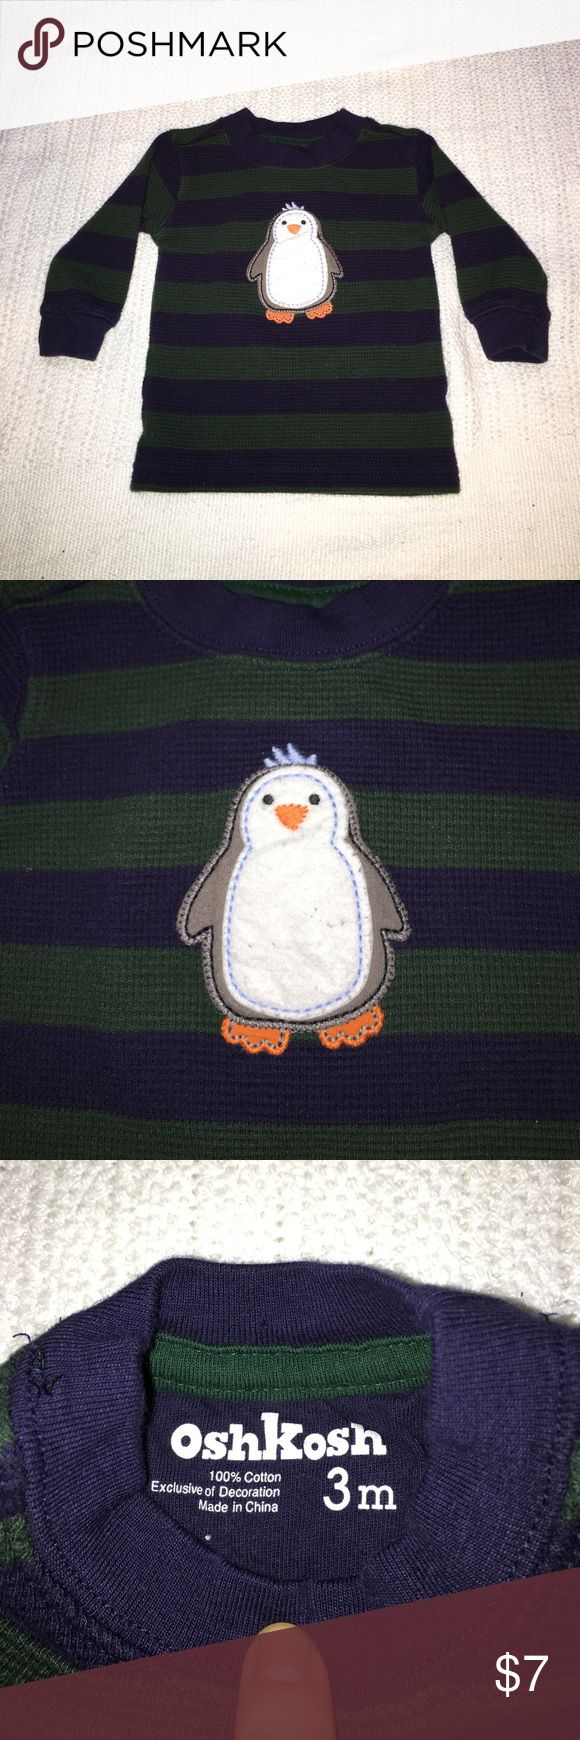 Penguin Thermal W/ Onesie Pants Set Forest green and navy striped thermal with penguin. Size 3M. Comes with blue and white stripped Mommy loves me Onesie and navy blue pants size 3M. Little stained in the front so it's a freebie with the thermal shirt. Shirts & Tops